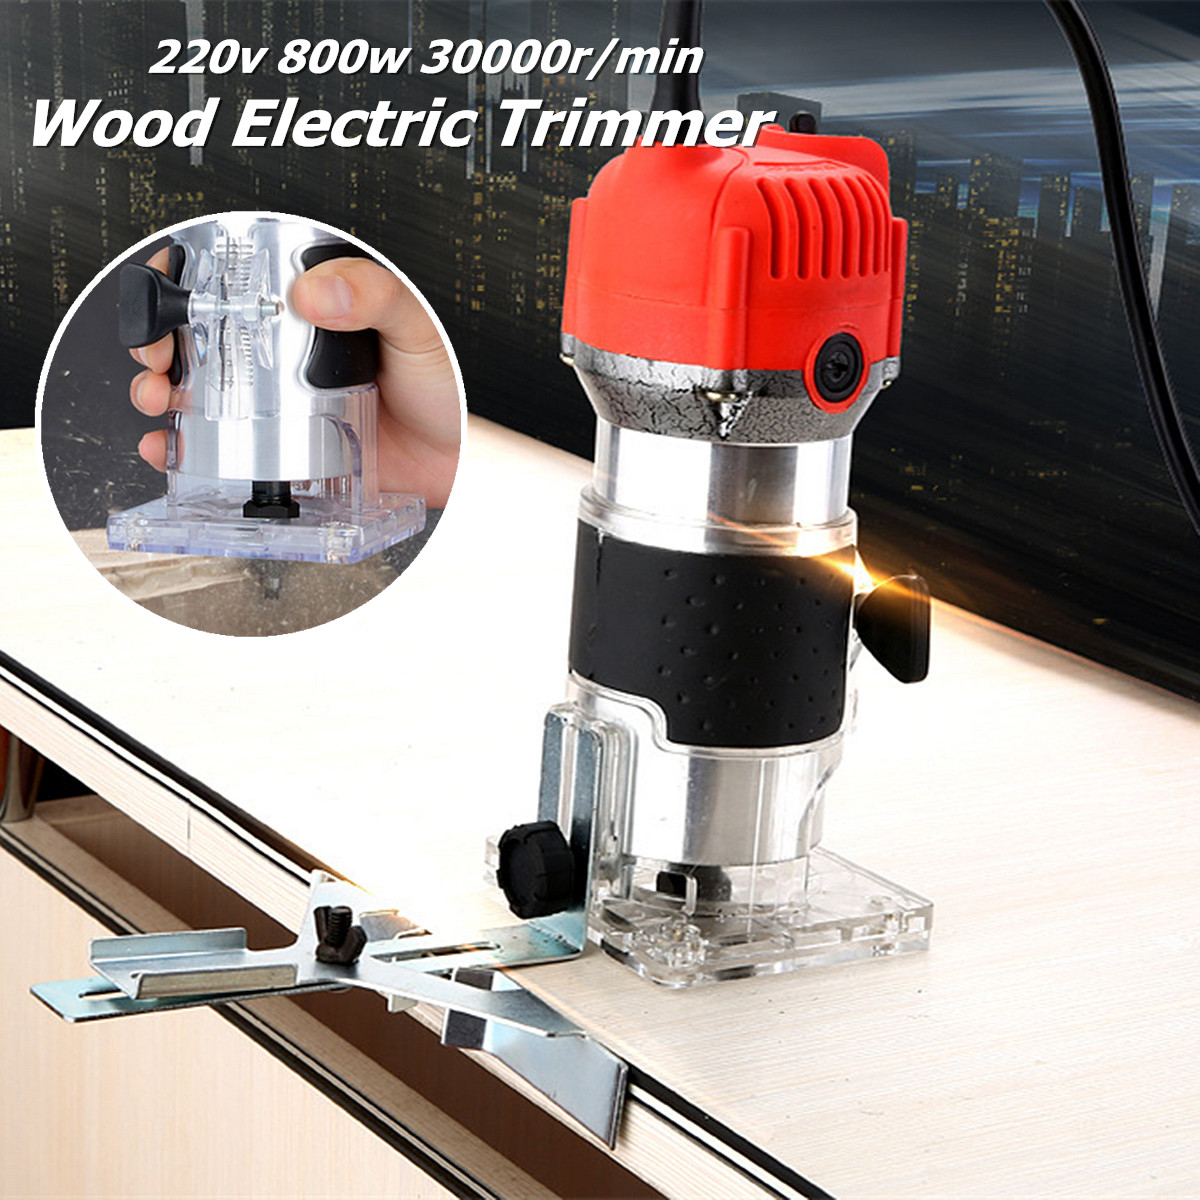 220V 800w 30000r/min Collet 6.35mm AU Plug Corded Electric Hand Trimmer Wood Laminator Router Joiners Tools Aluminum+Plastic220V 800w 30000r/min Collet 6.35mm AU Plug Corded Electric Hand Trimmer Wood Laminator Router Joiners Tools Aluminum+Plastic